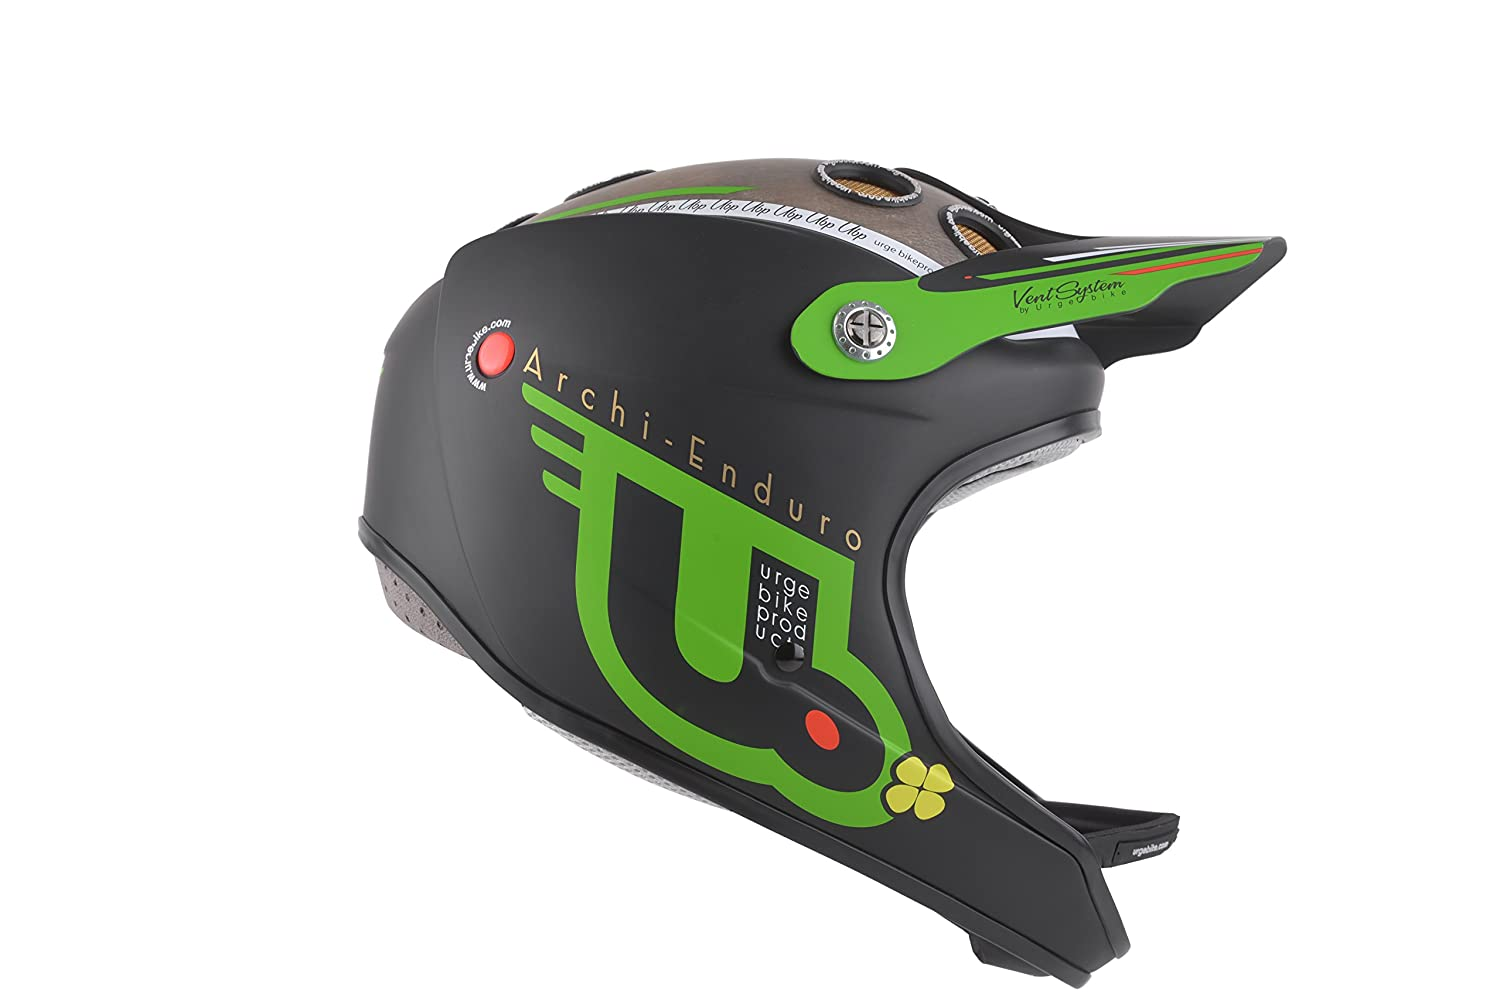 Urge Archi Enduro Casco Integral, Color Negro/Verde, tamaño L/XL (58/60cm): Amazon.es: Deportes y aire libre